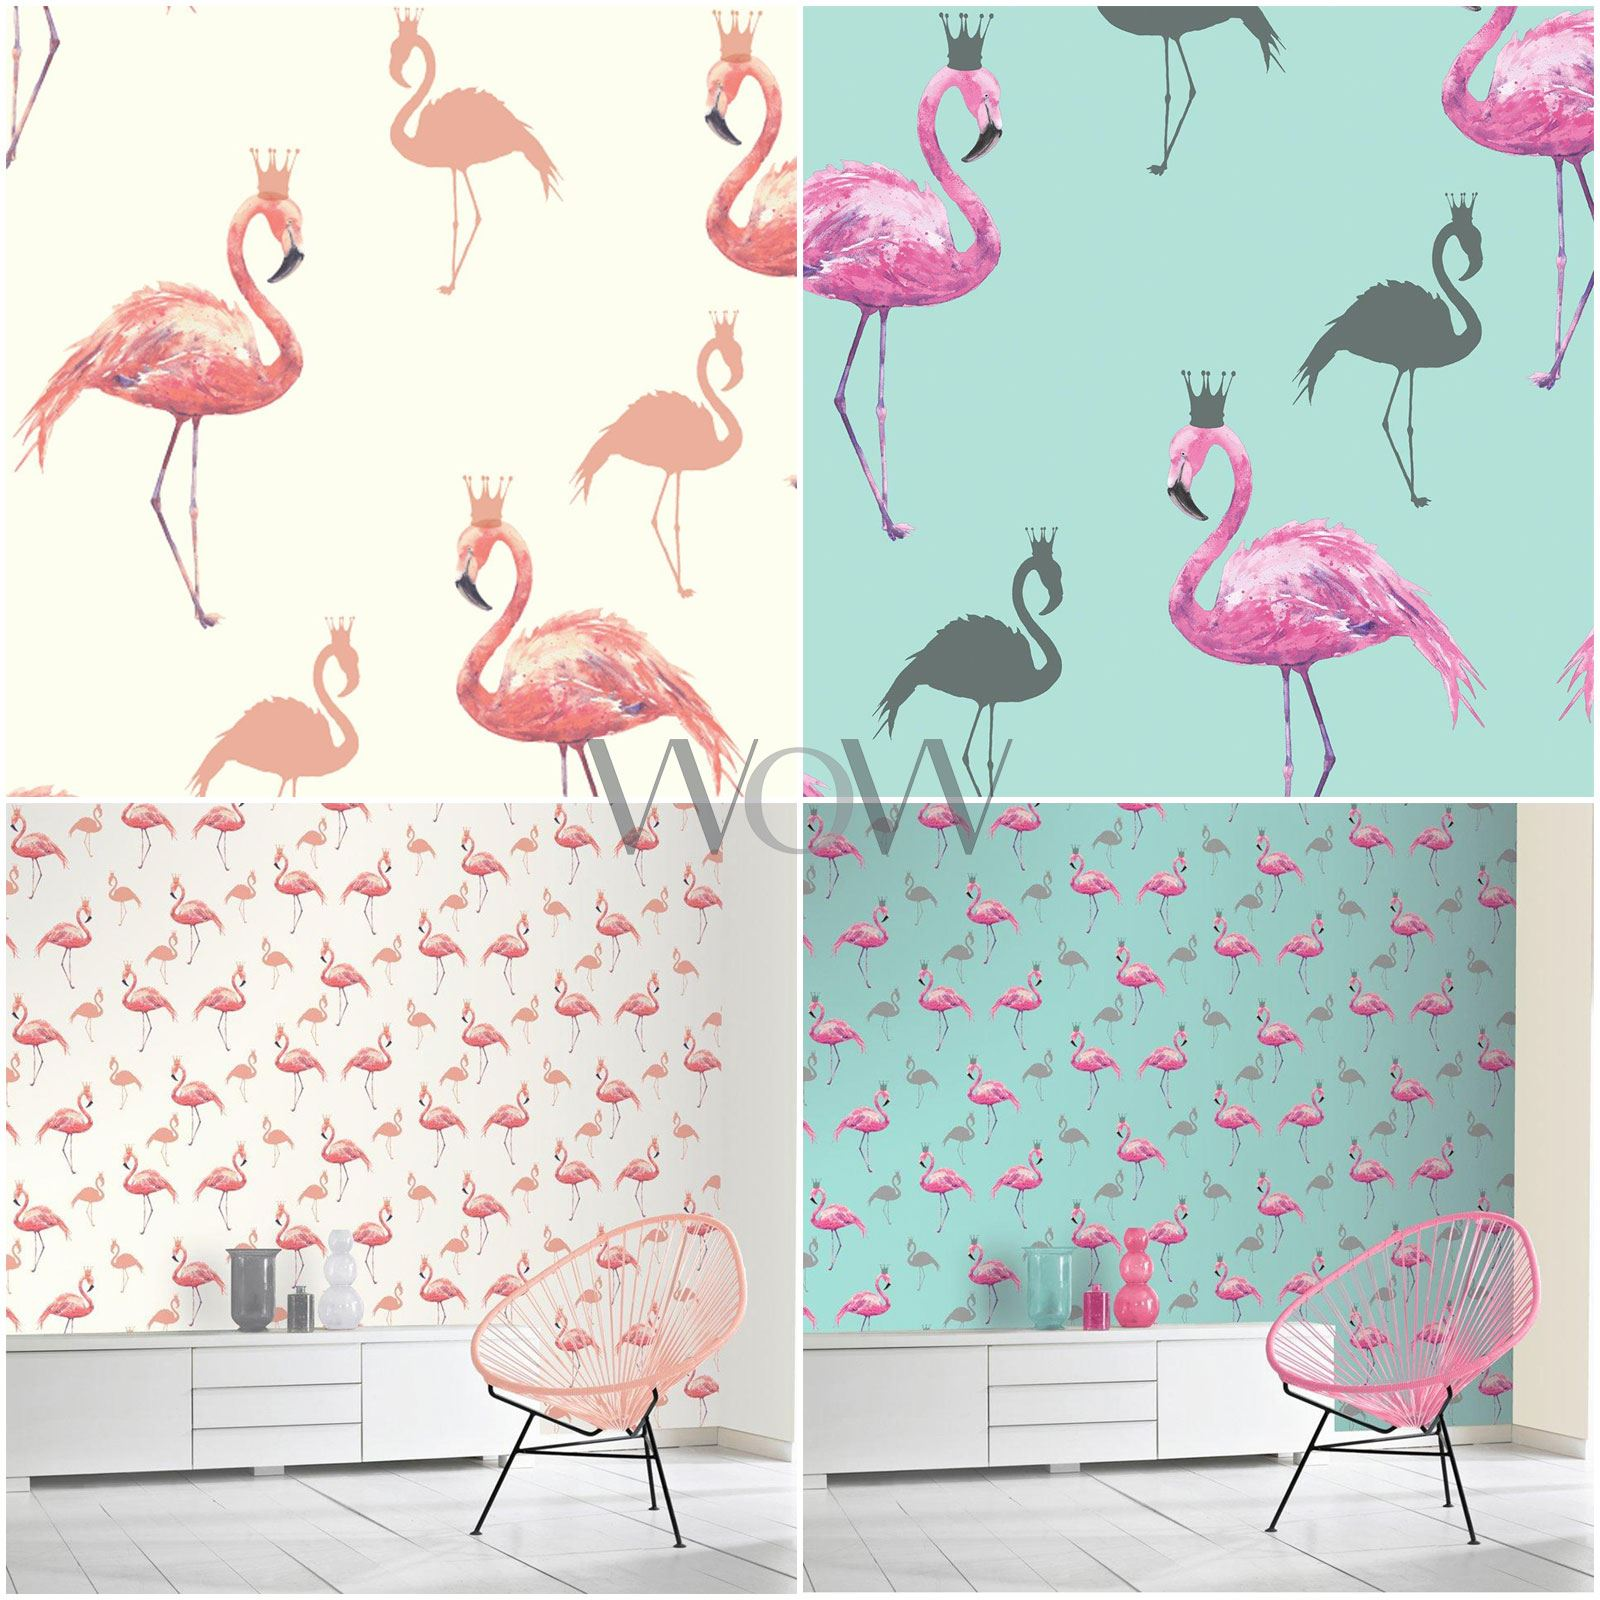 ARTHOUSE QUEEN FLAMINGO WALLPAPER GLITTER HIGHLIGHTS - CORAL & PINK / TEAL